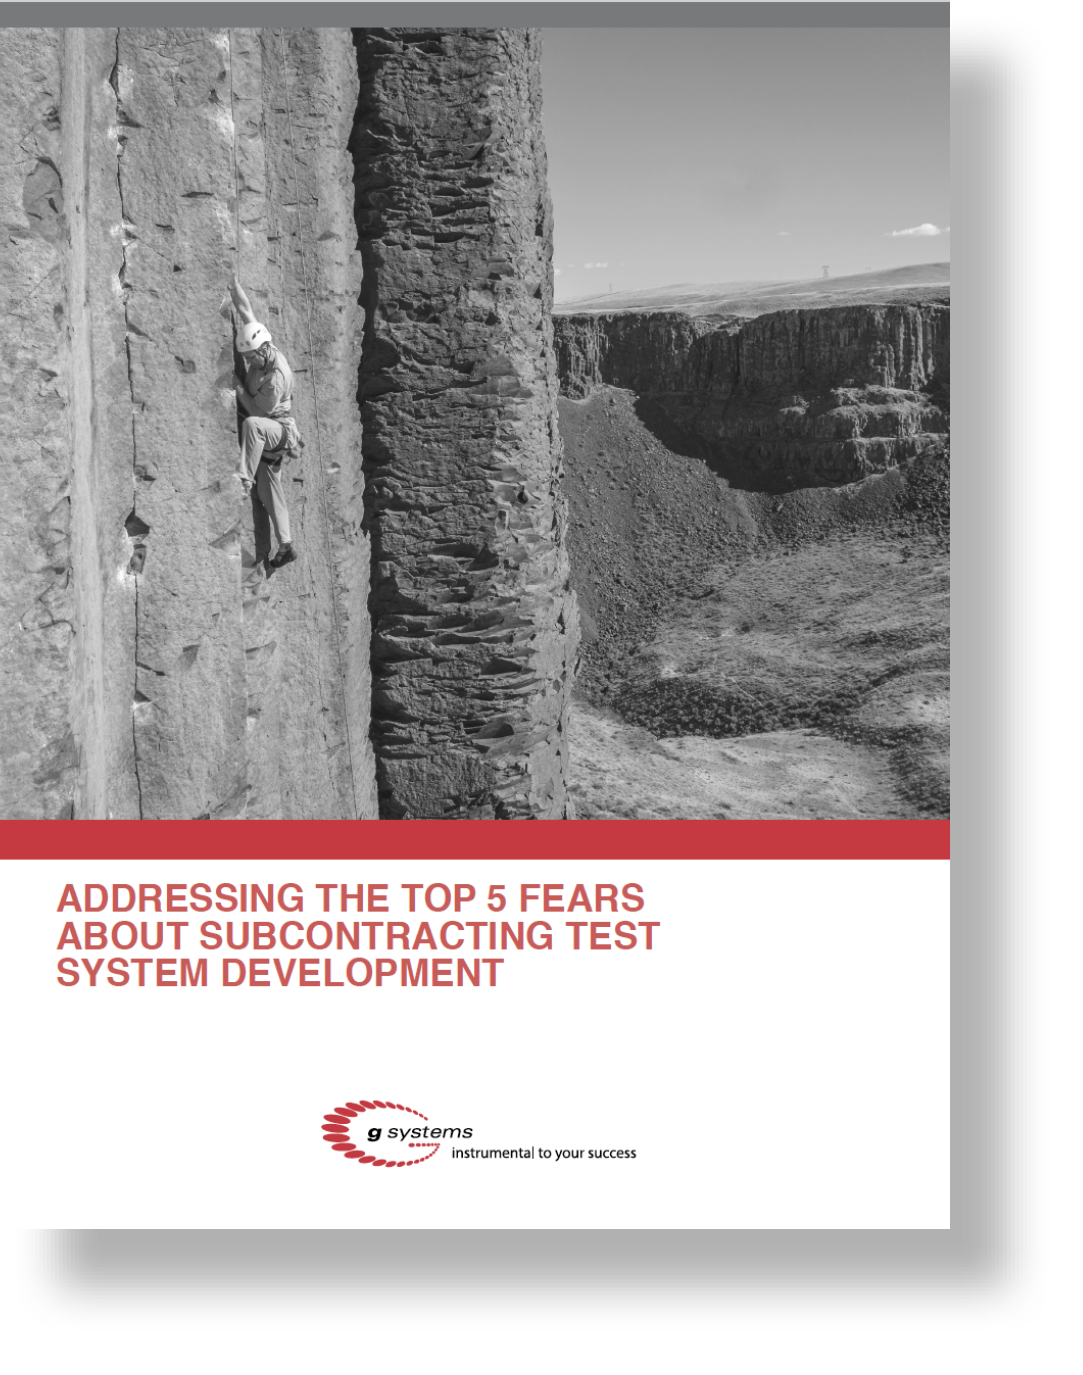 Fears of subcontracting